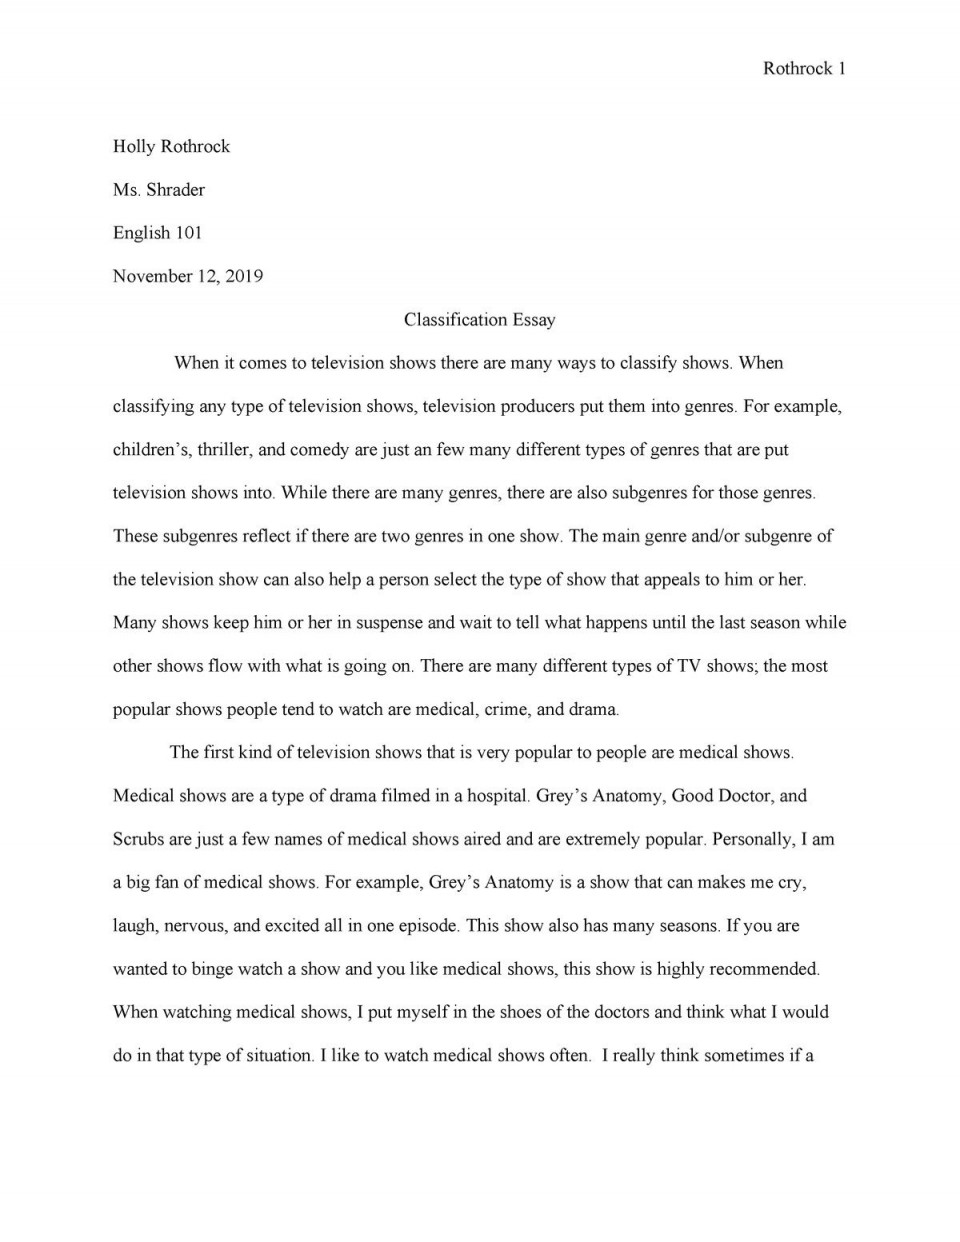 007 Awful Classification Essay Idea  About Type Of Food Topic Example960